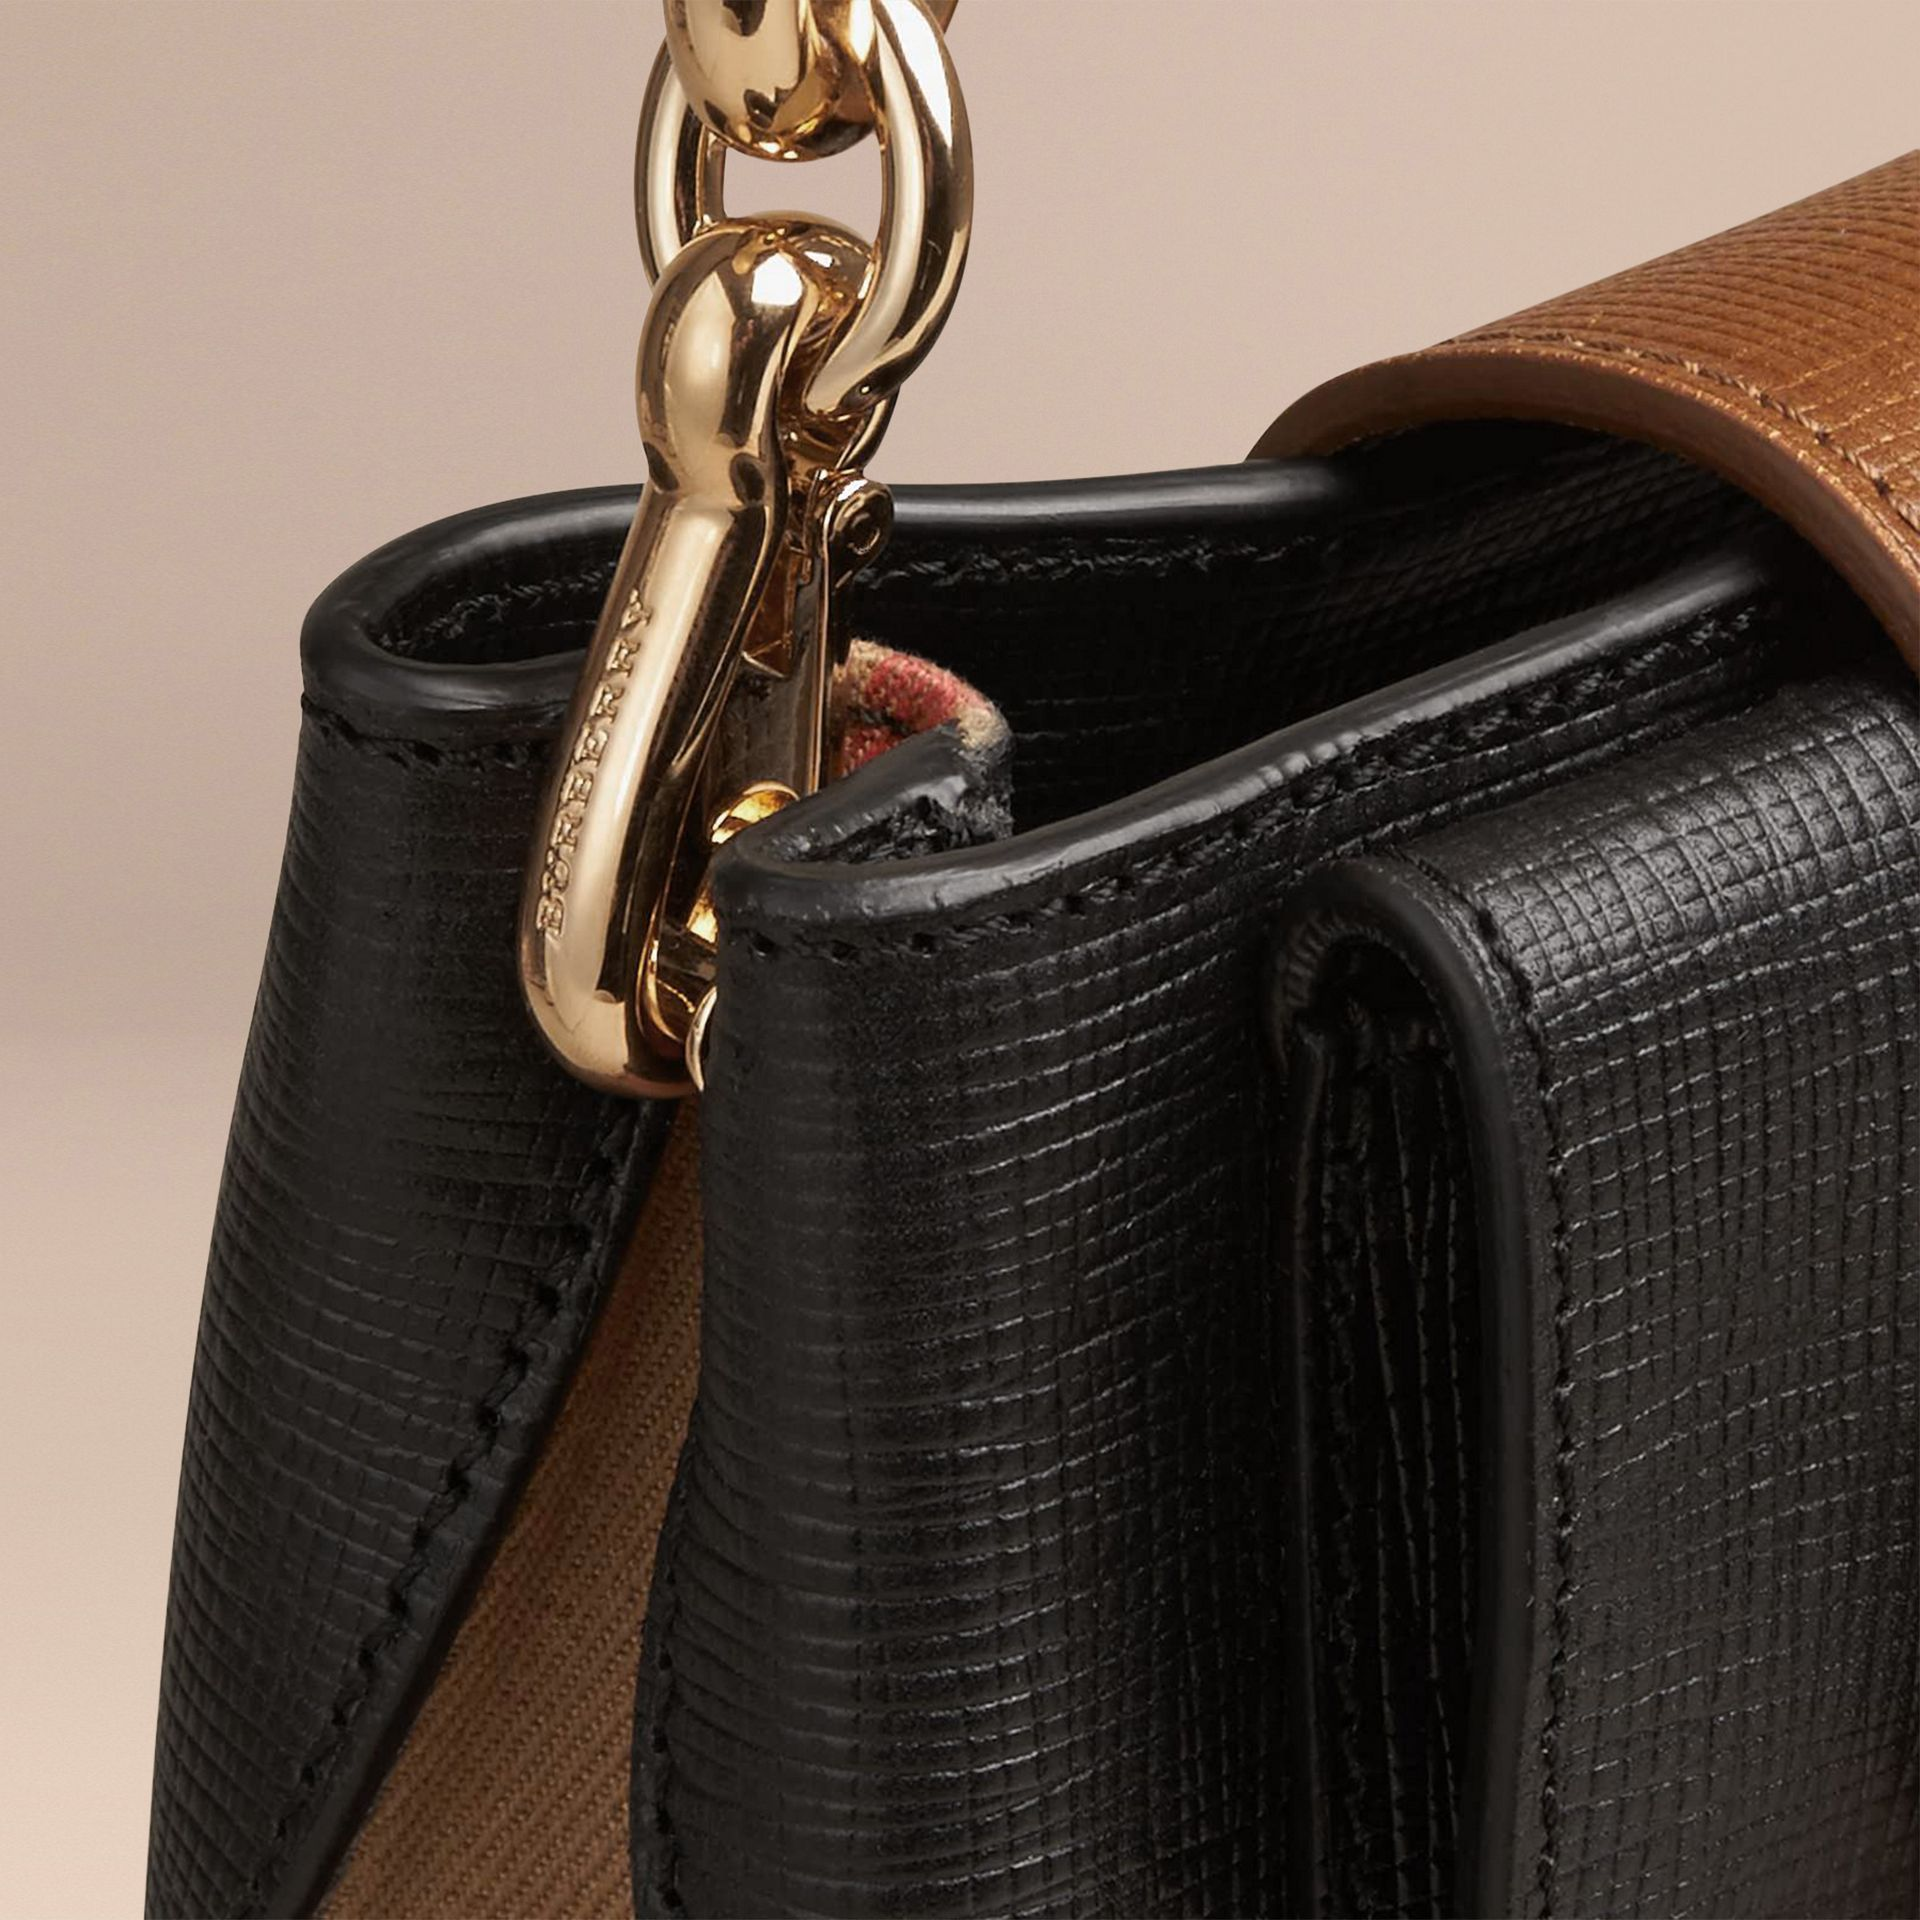 Nero Borsa The Buckle quadrata piccola in pelle e motivo House check Nero - immagine della galleria 6